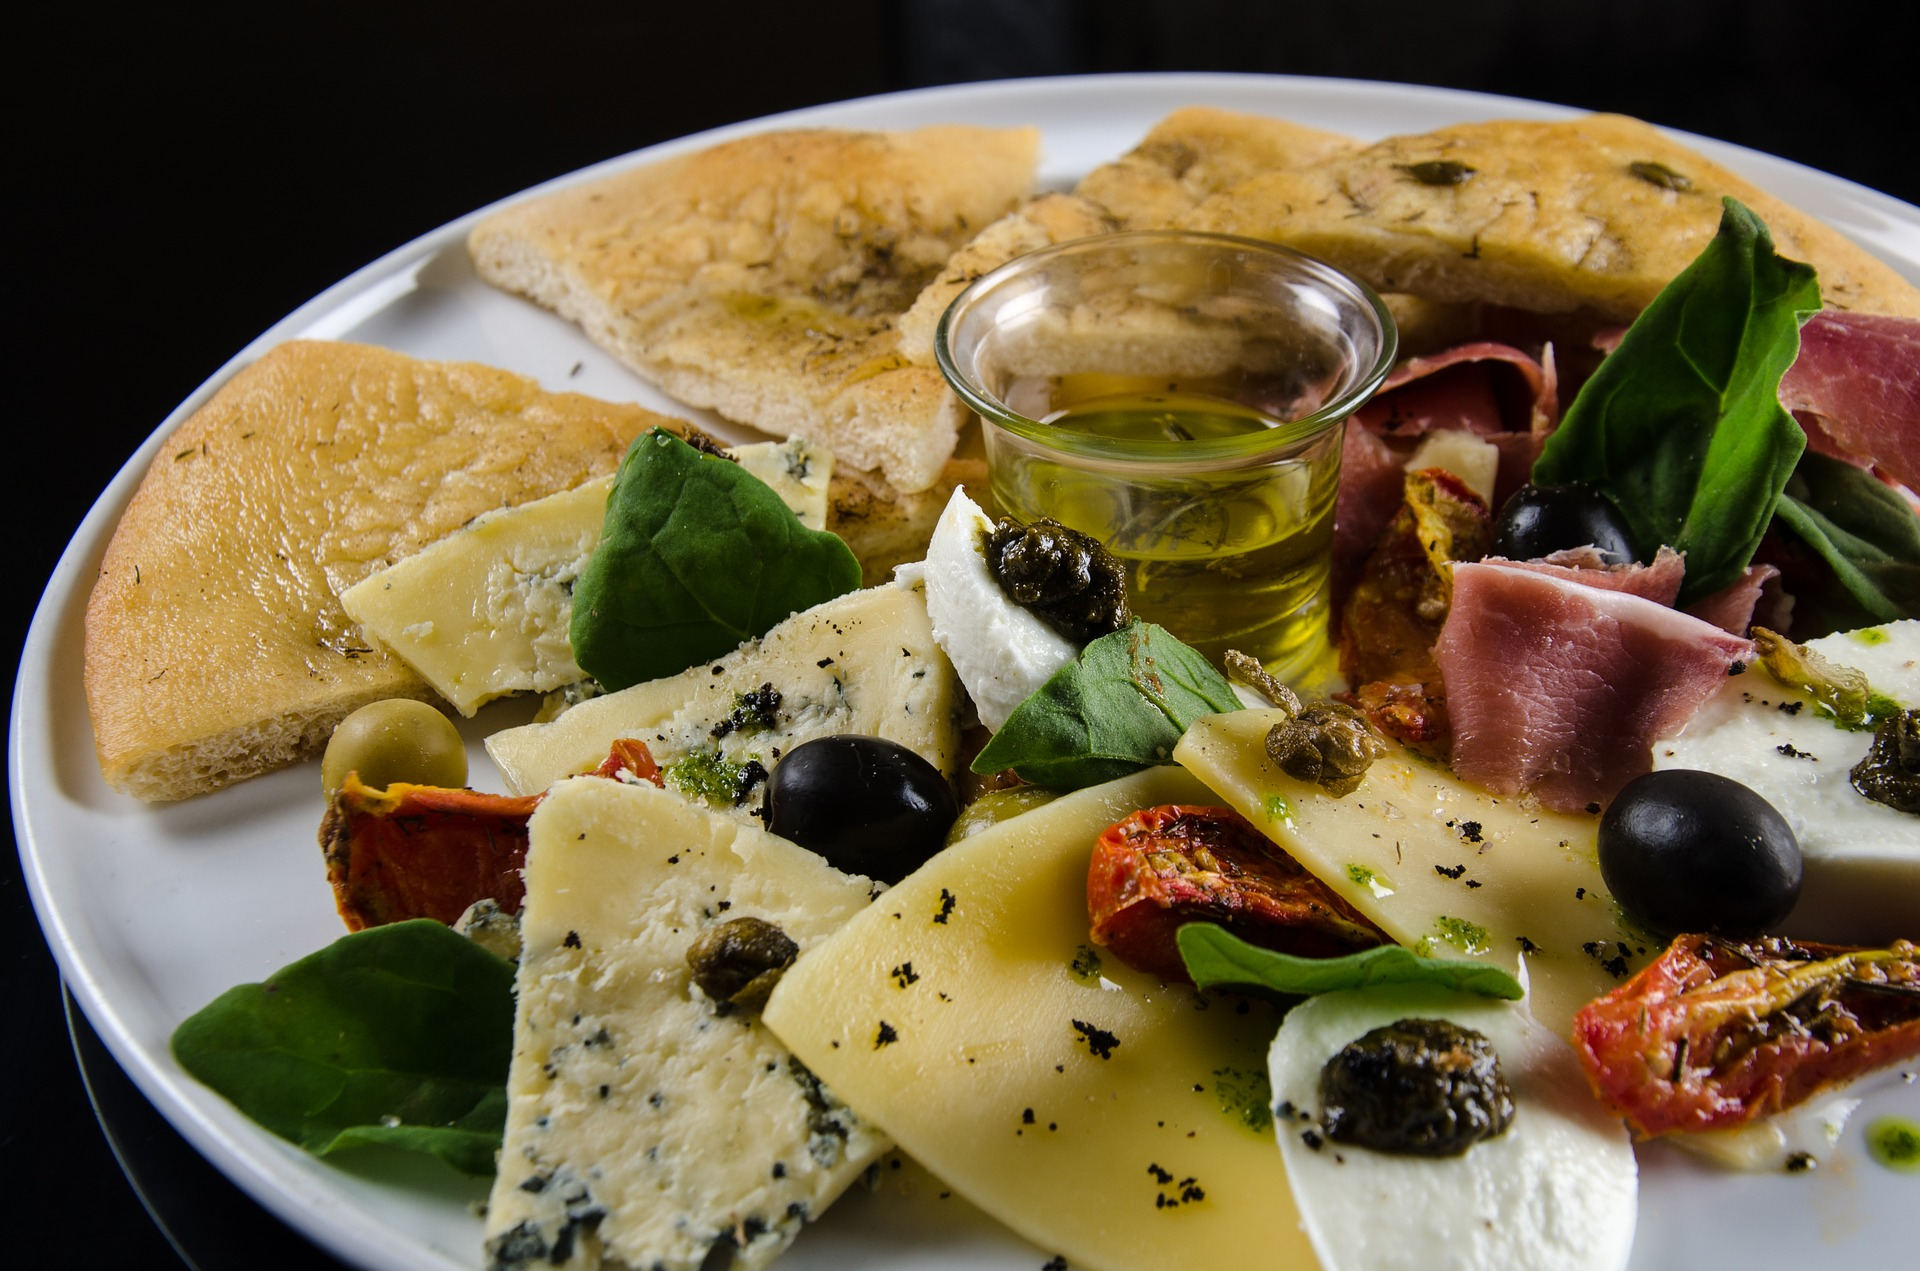 foccacia-with-olives-3411842_1920